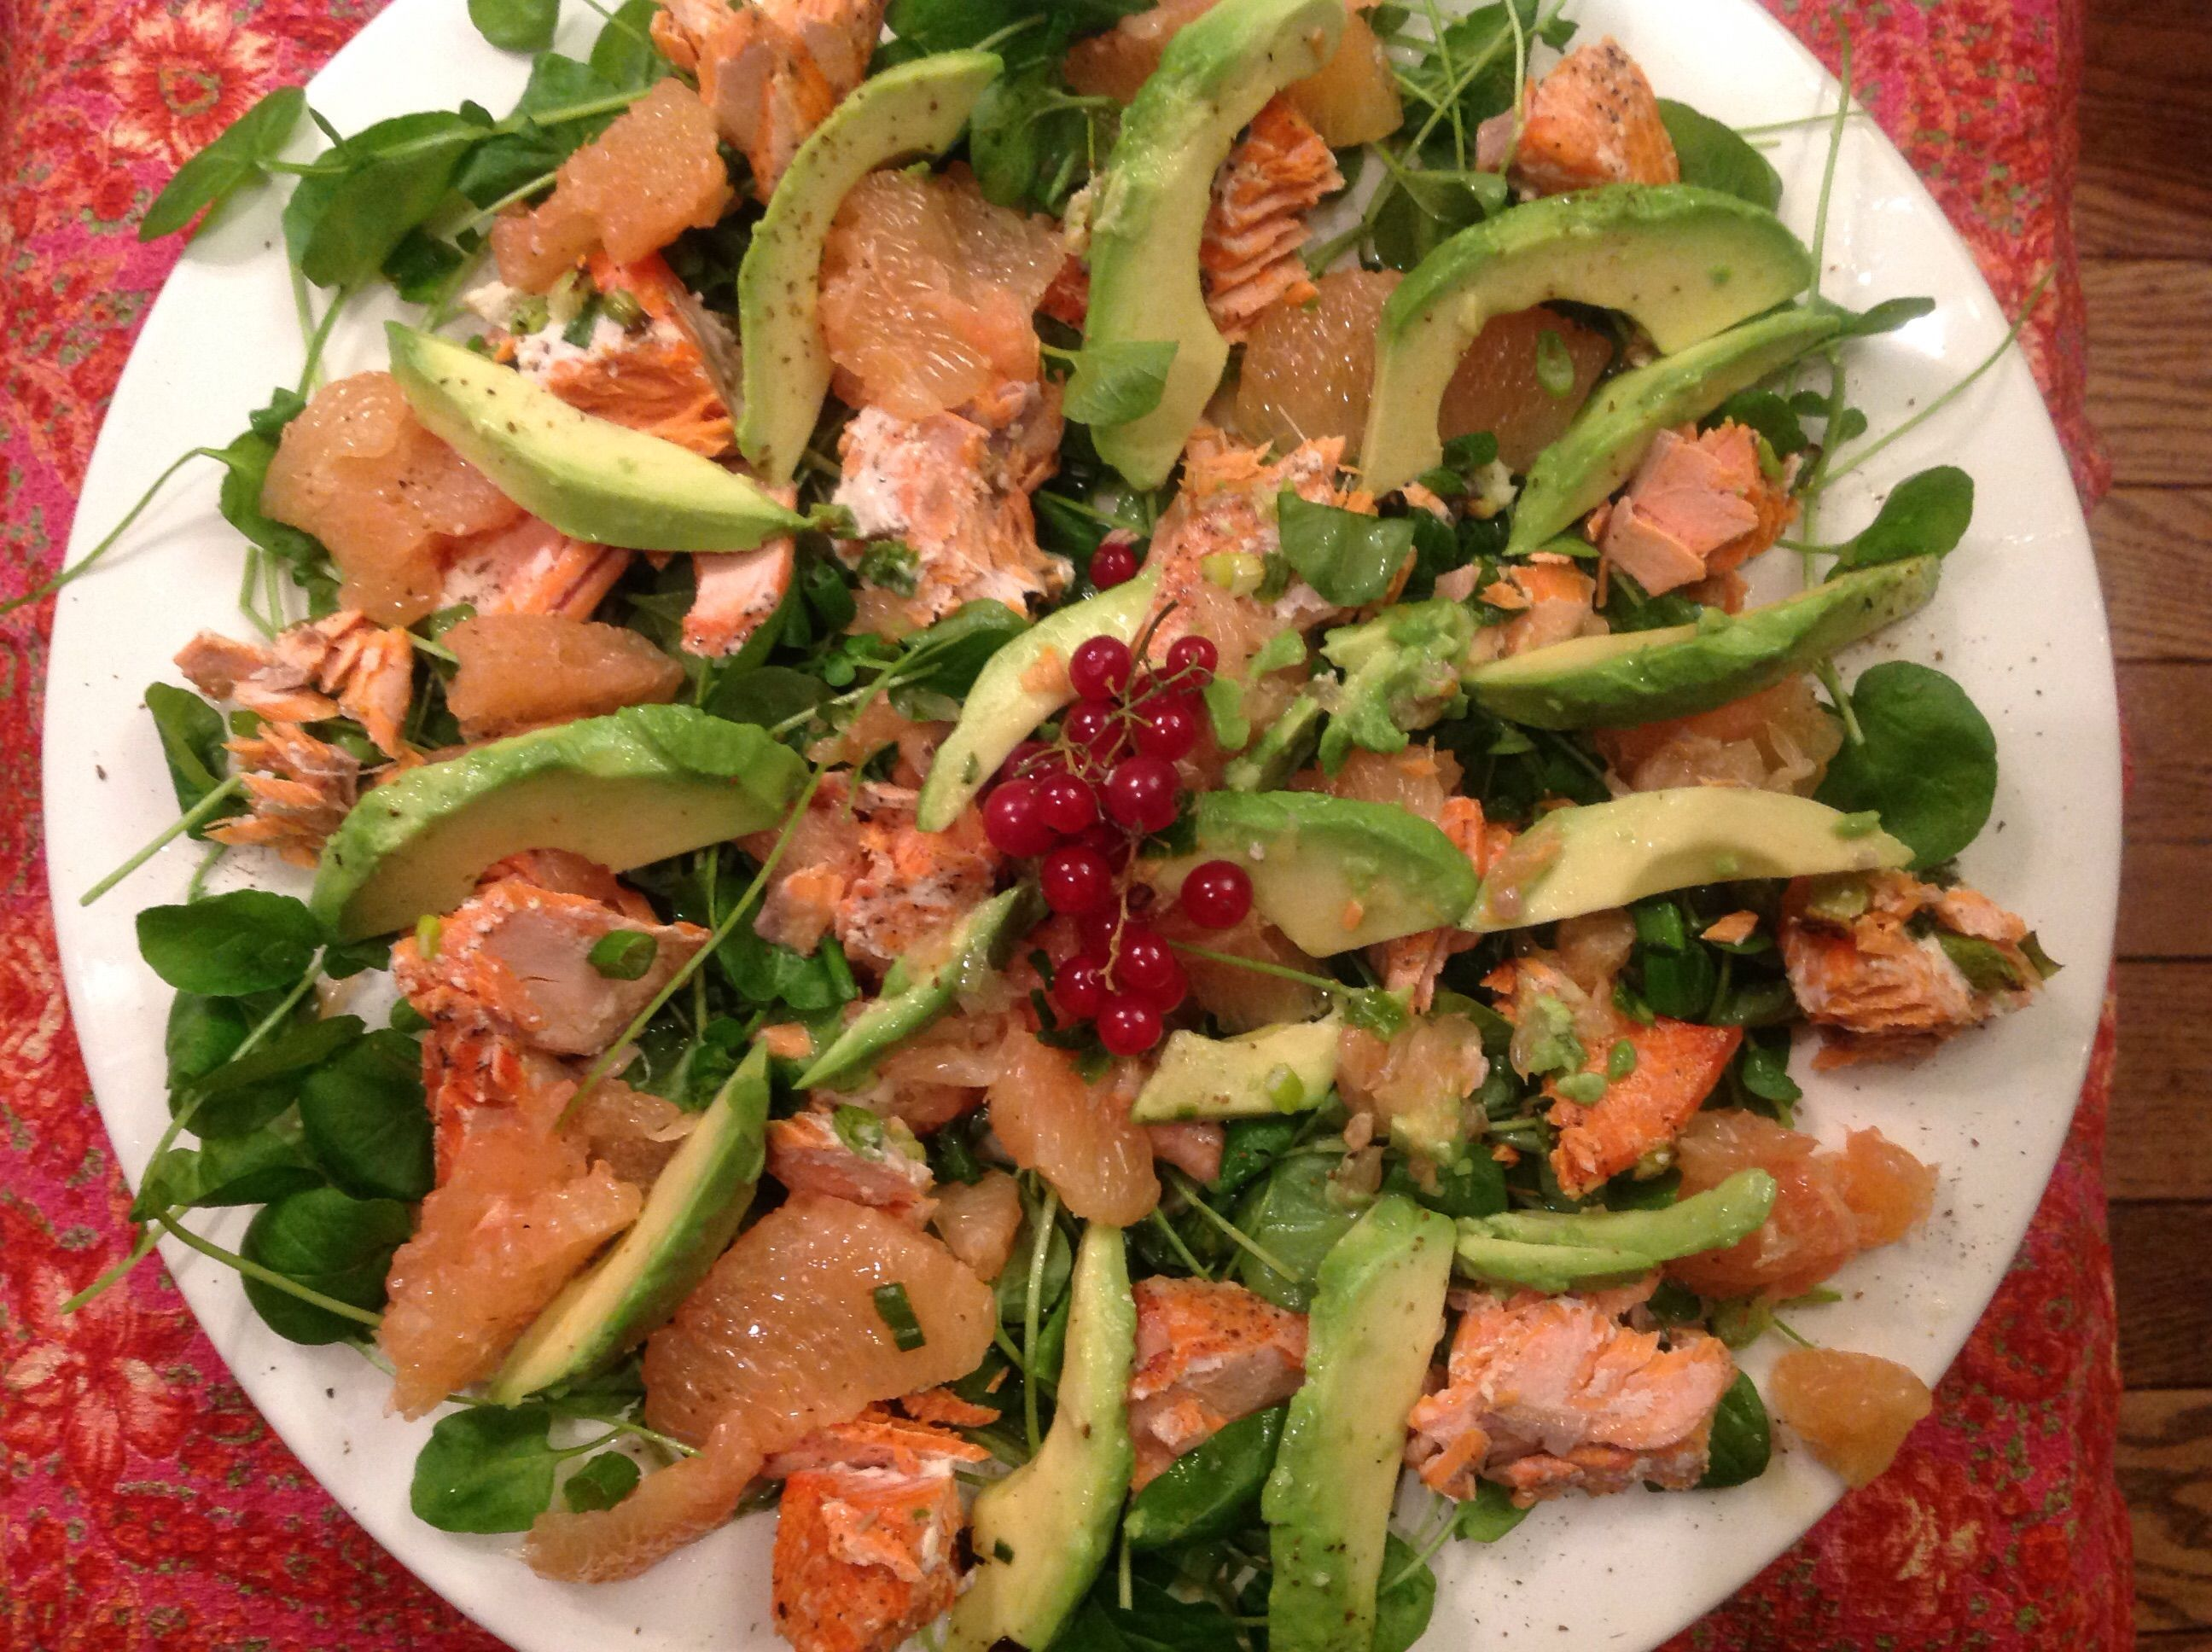 Ruby Red grapefruit, oven roasted salmon, avocado on watercress salad.